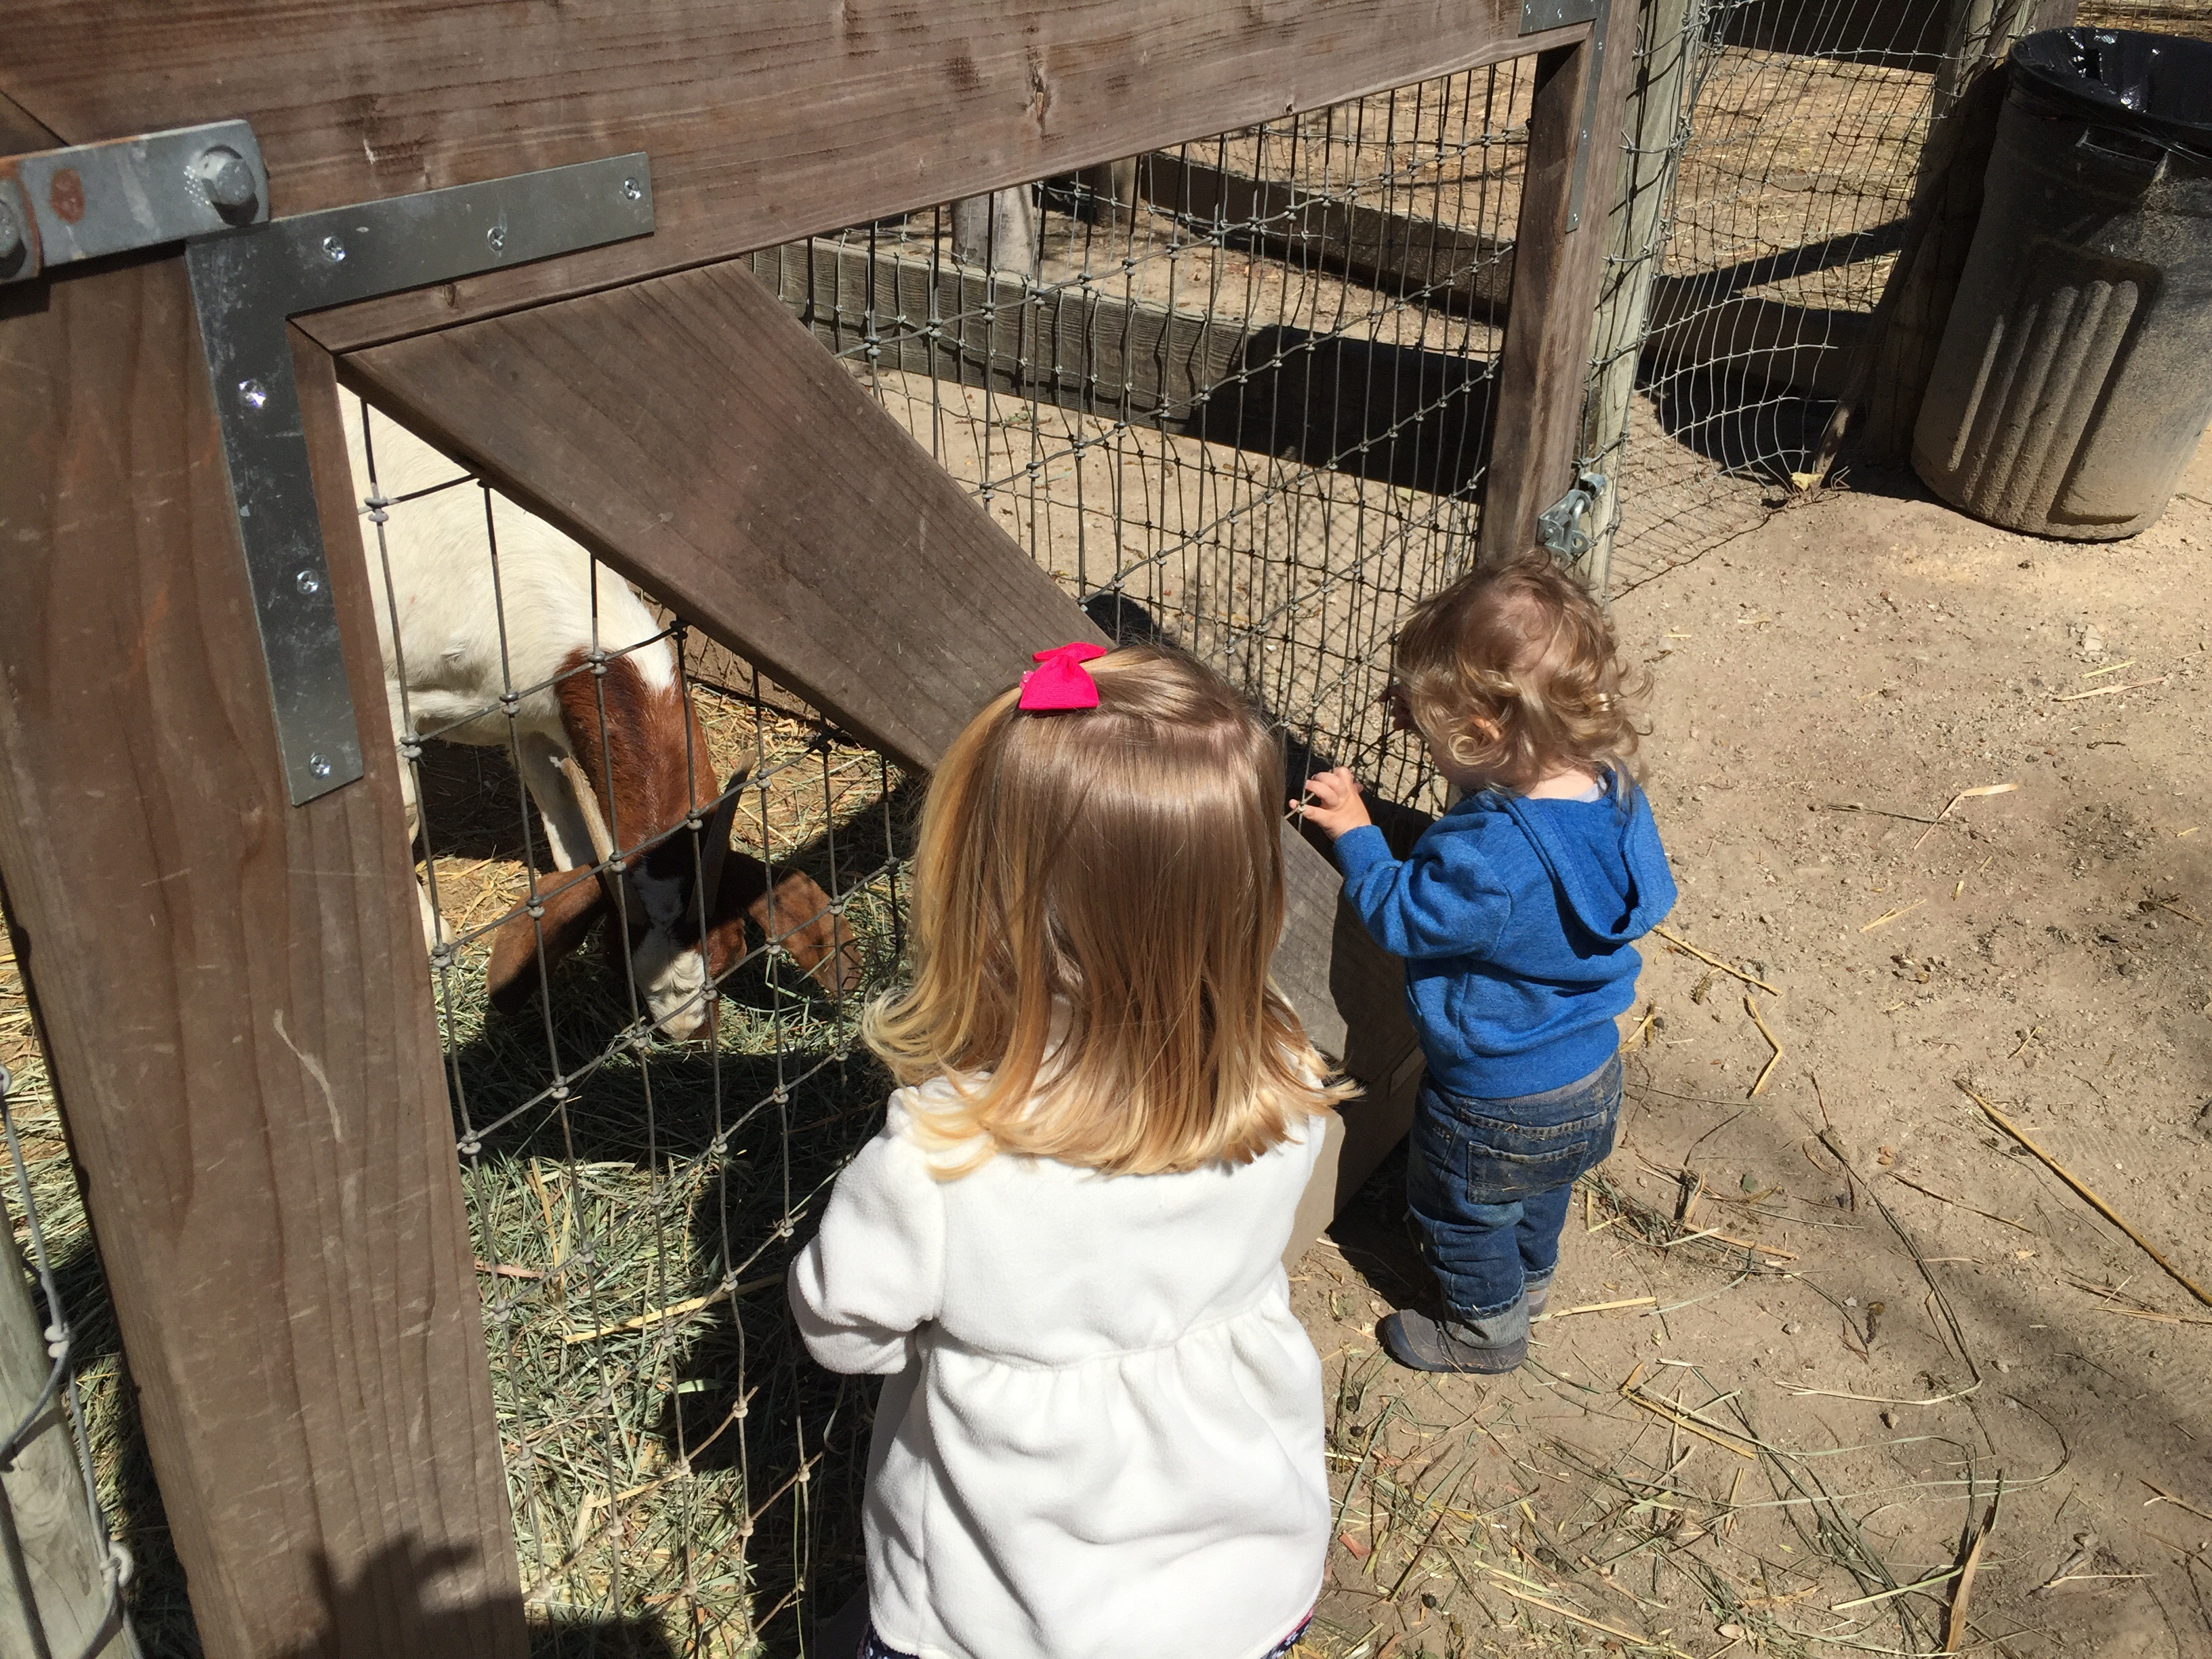 Little boy and little girl look at the baby goats at Avila Valley Barn in San Luis Obispo.